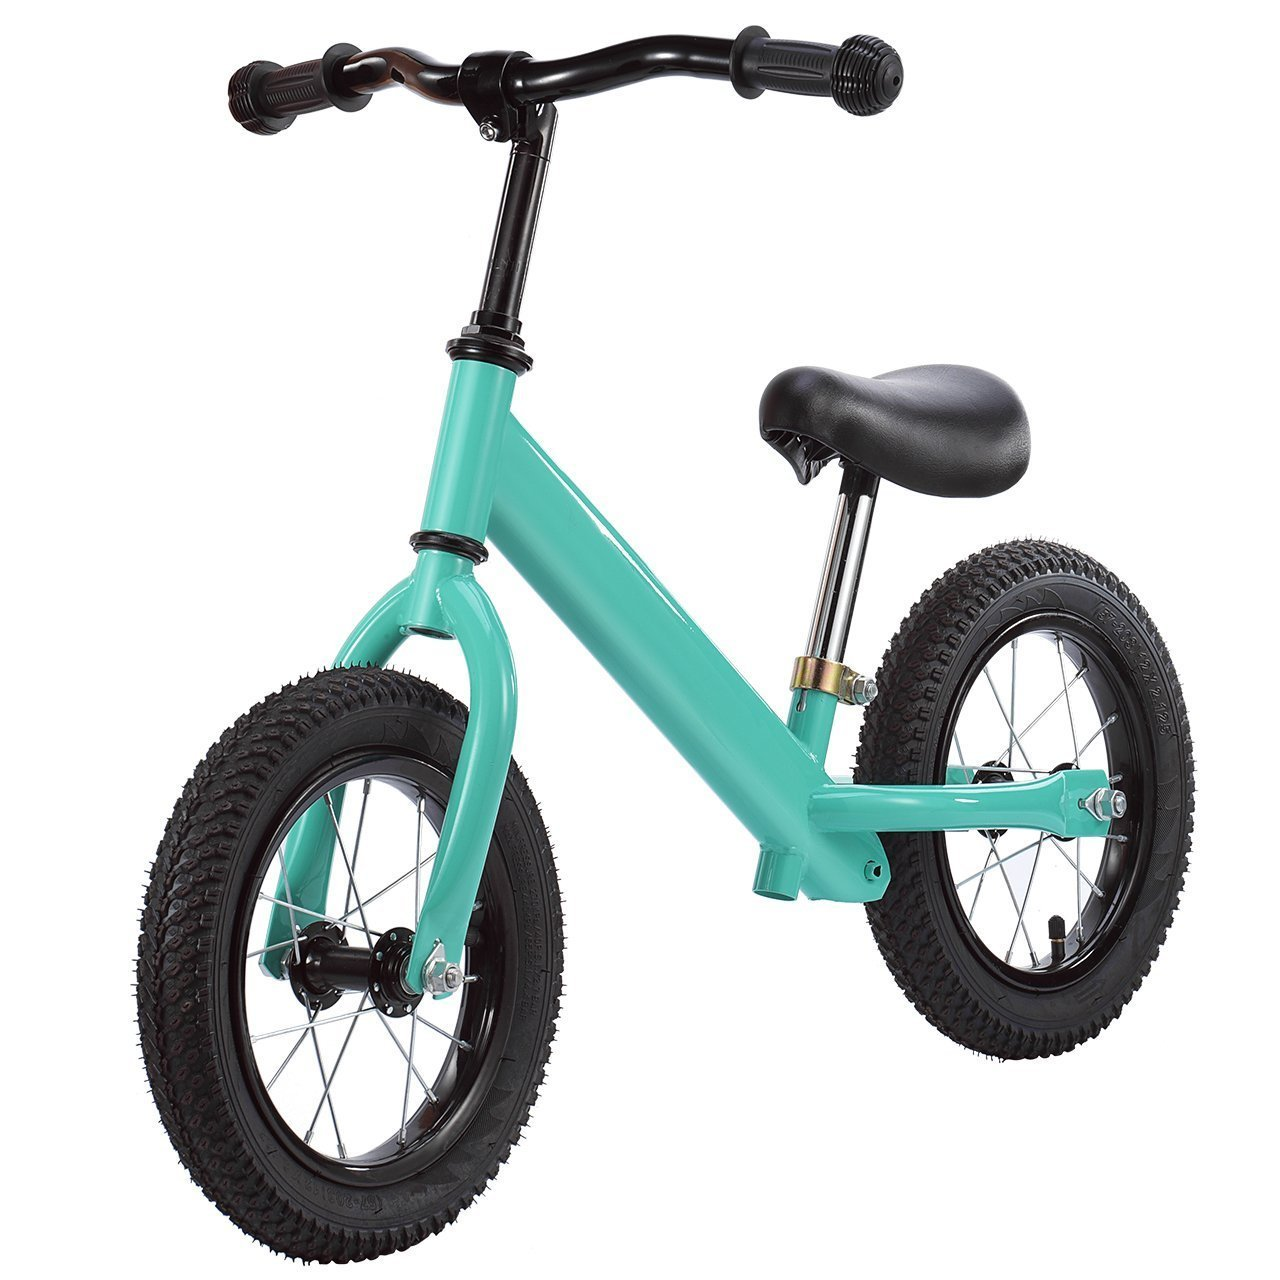 Homitt Kids Balance Bike, No Pedal Push Bicycle for Kids from Age 18 Months to 5 Years.